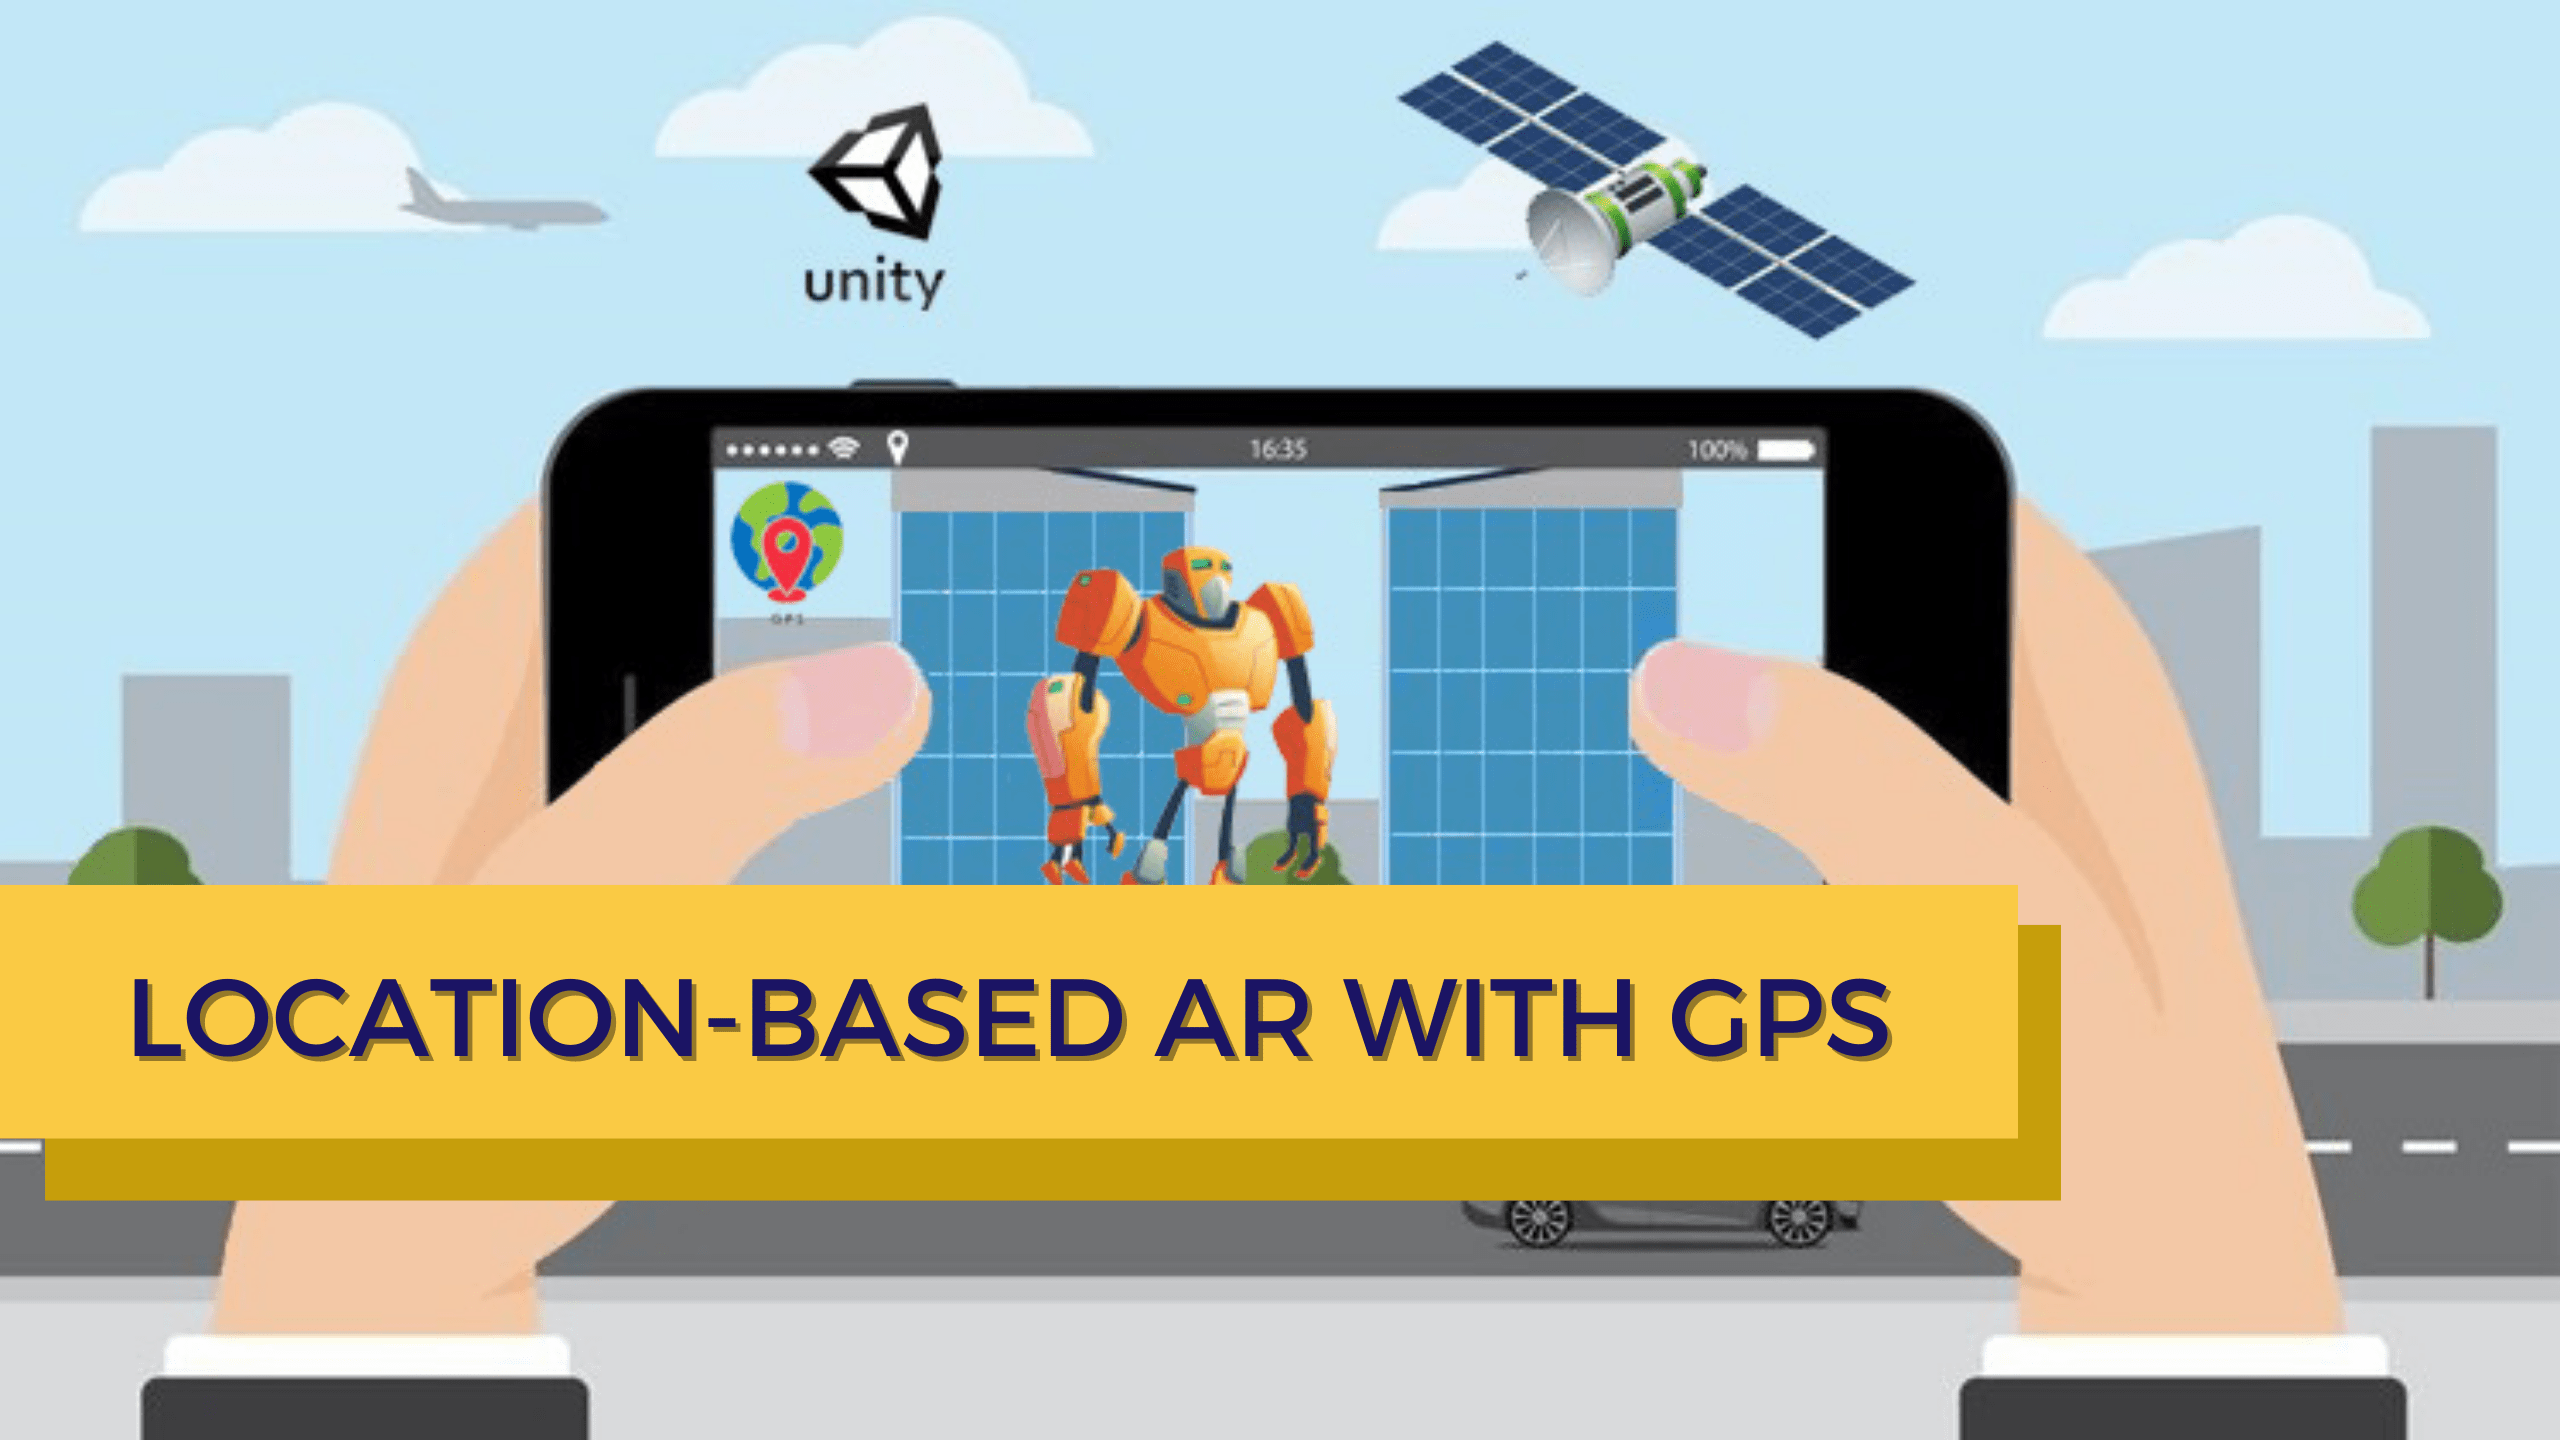 Location-based Augmented Reality (AR) Using GPS